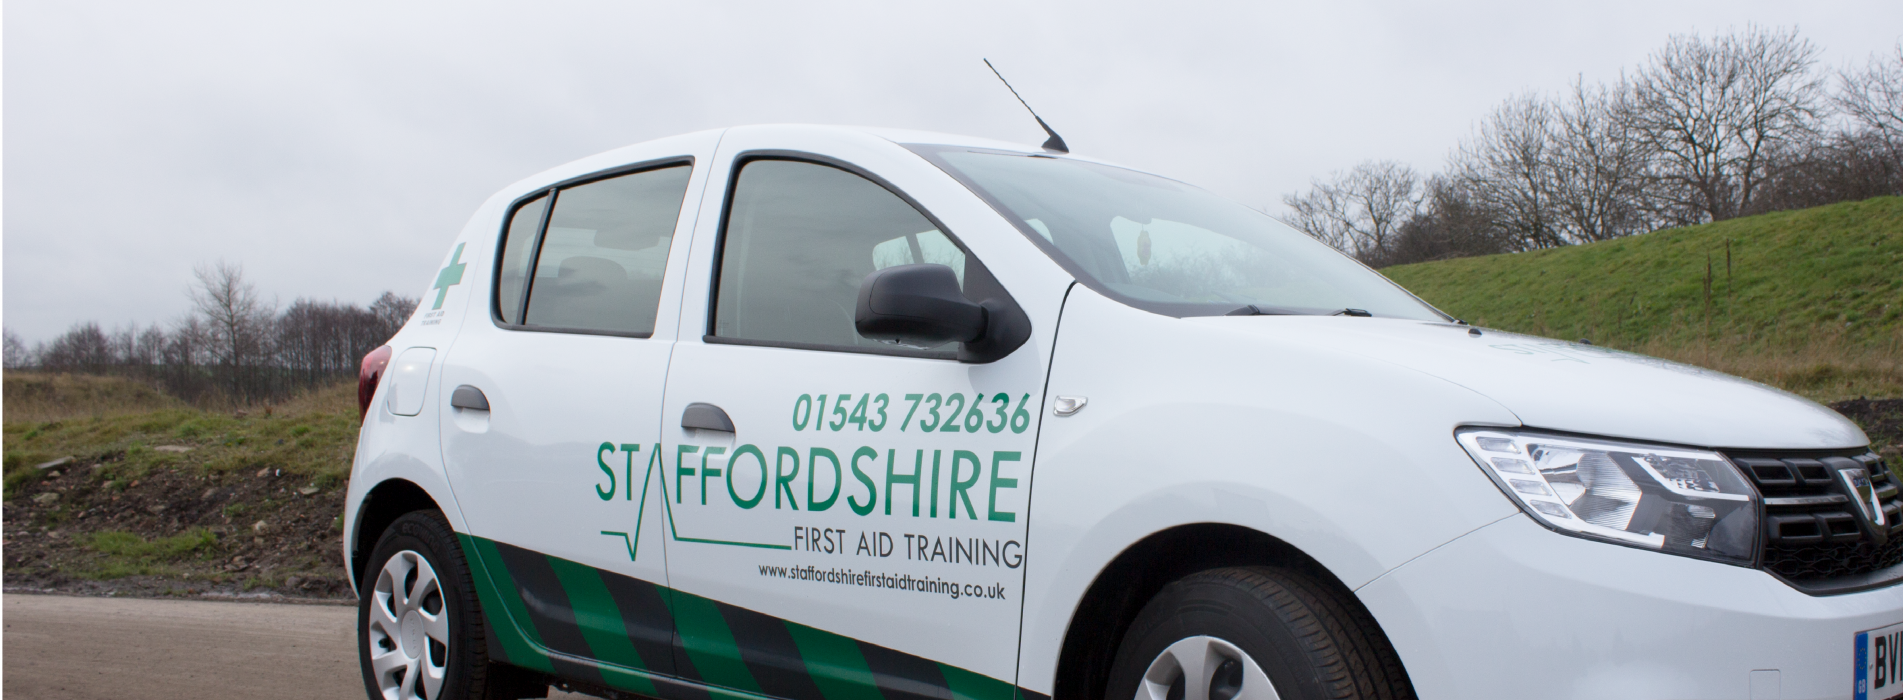 Bedfordshire First Aid Training